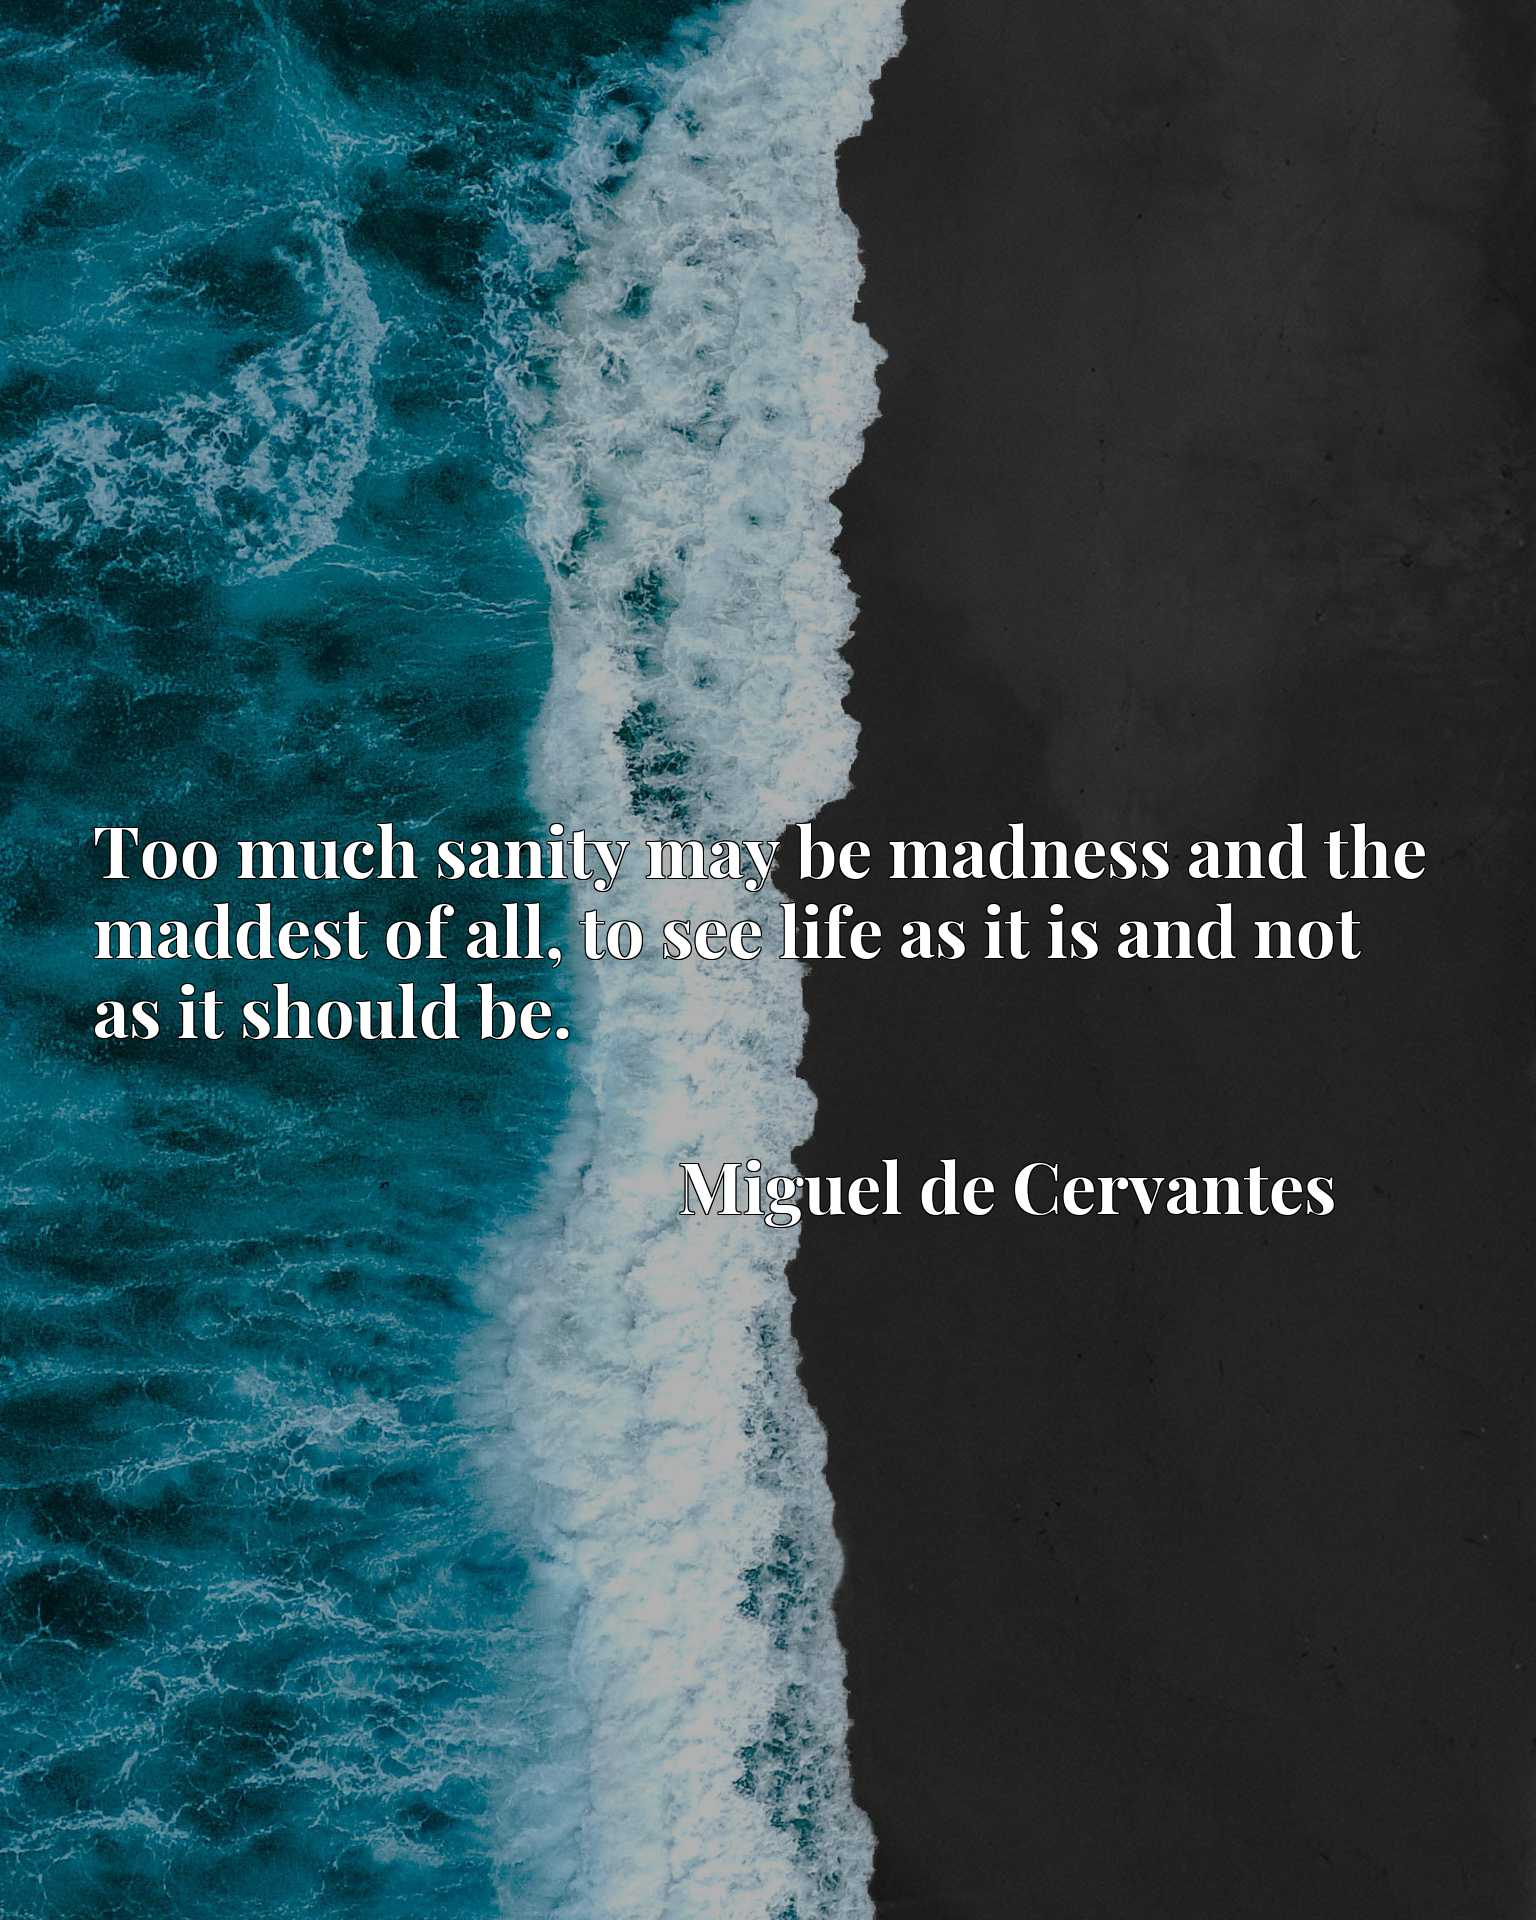 Quote Picture :Too much sanity may be madness and the maddest of all, to see life as it is and not as it should be.